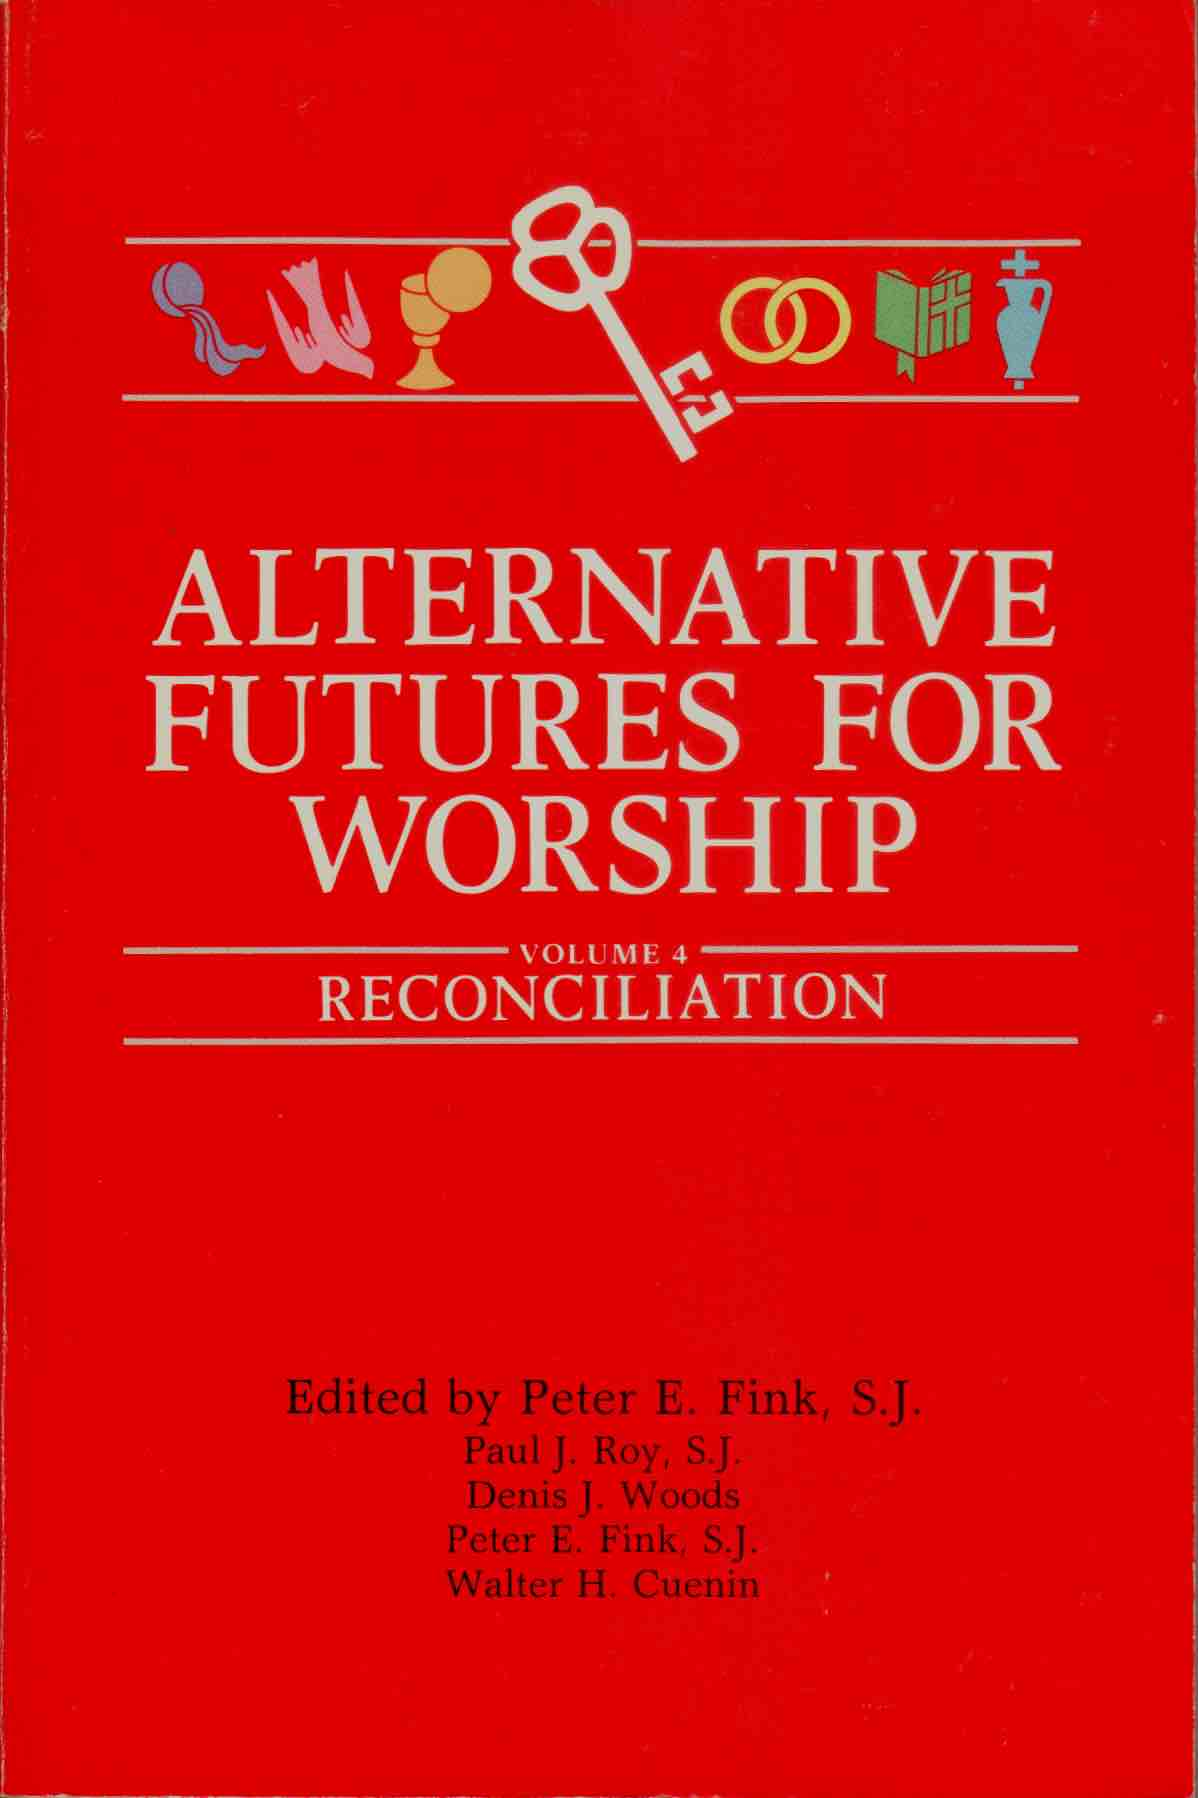 Cover of Alternative Futures for Worship